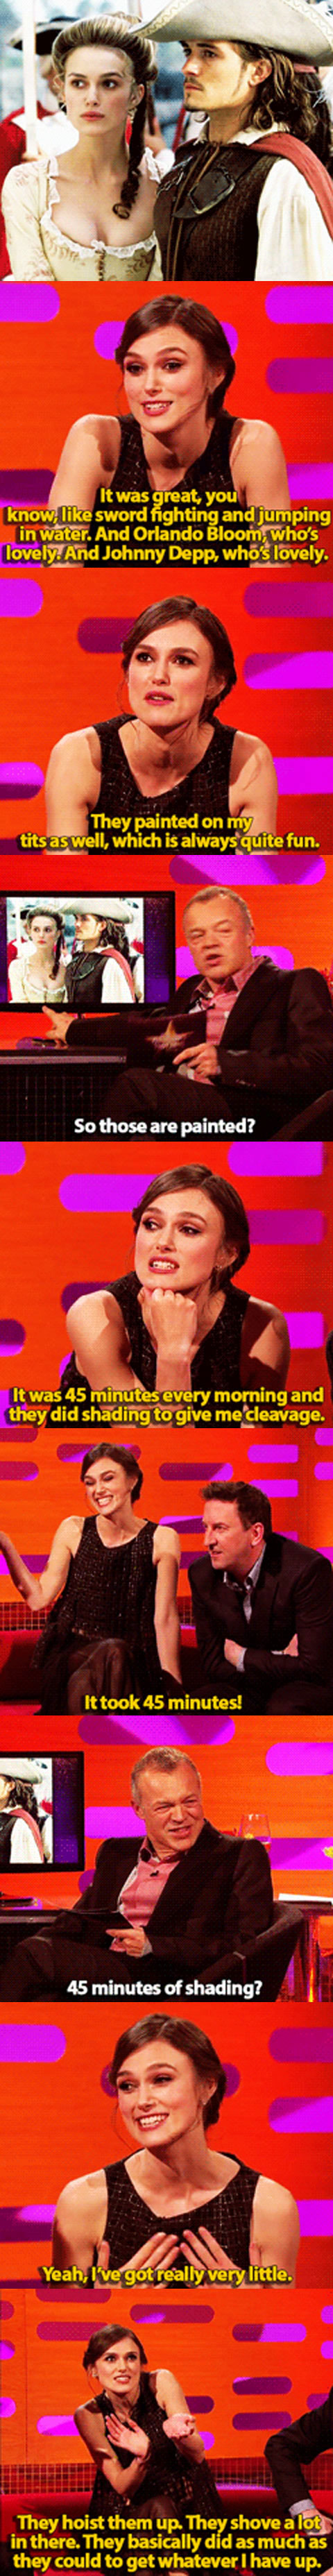 funny-Knightley-Keira-painting-great